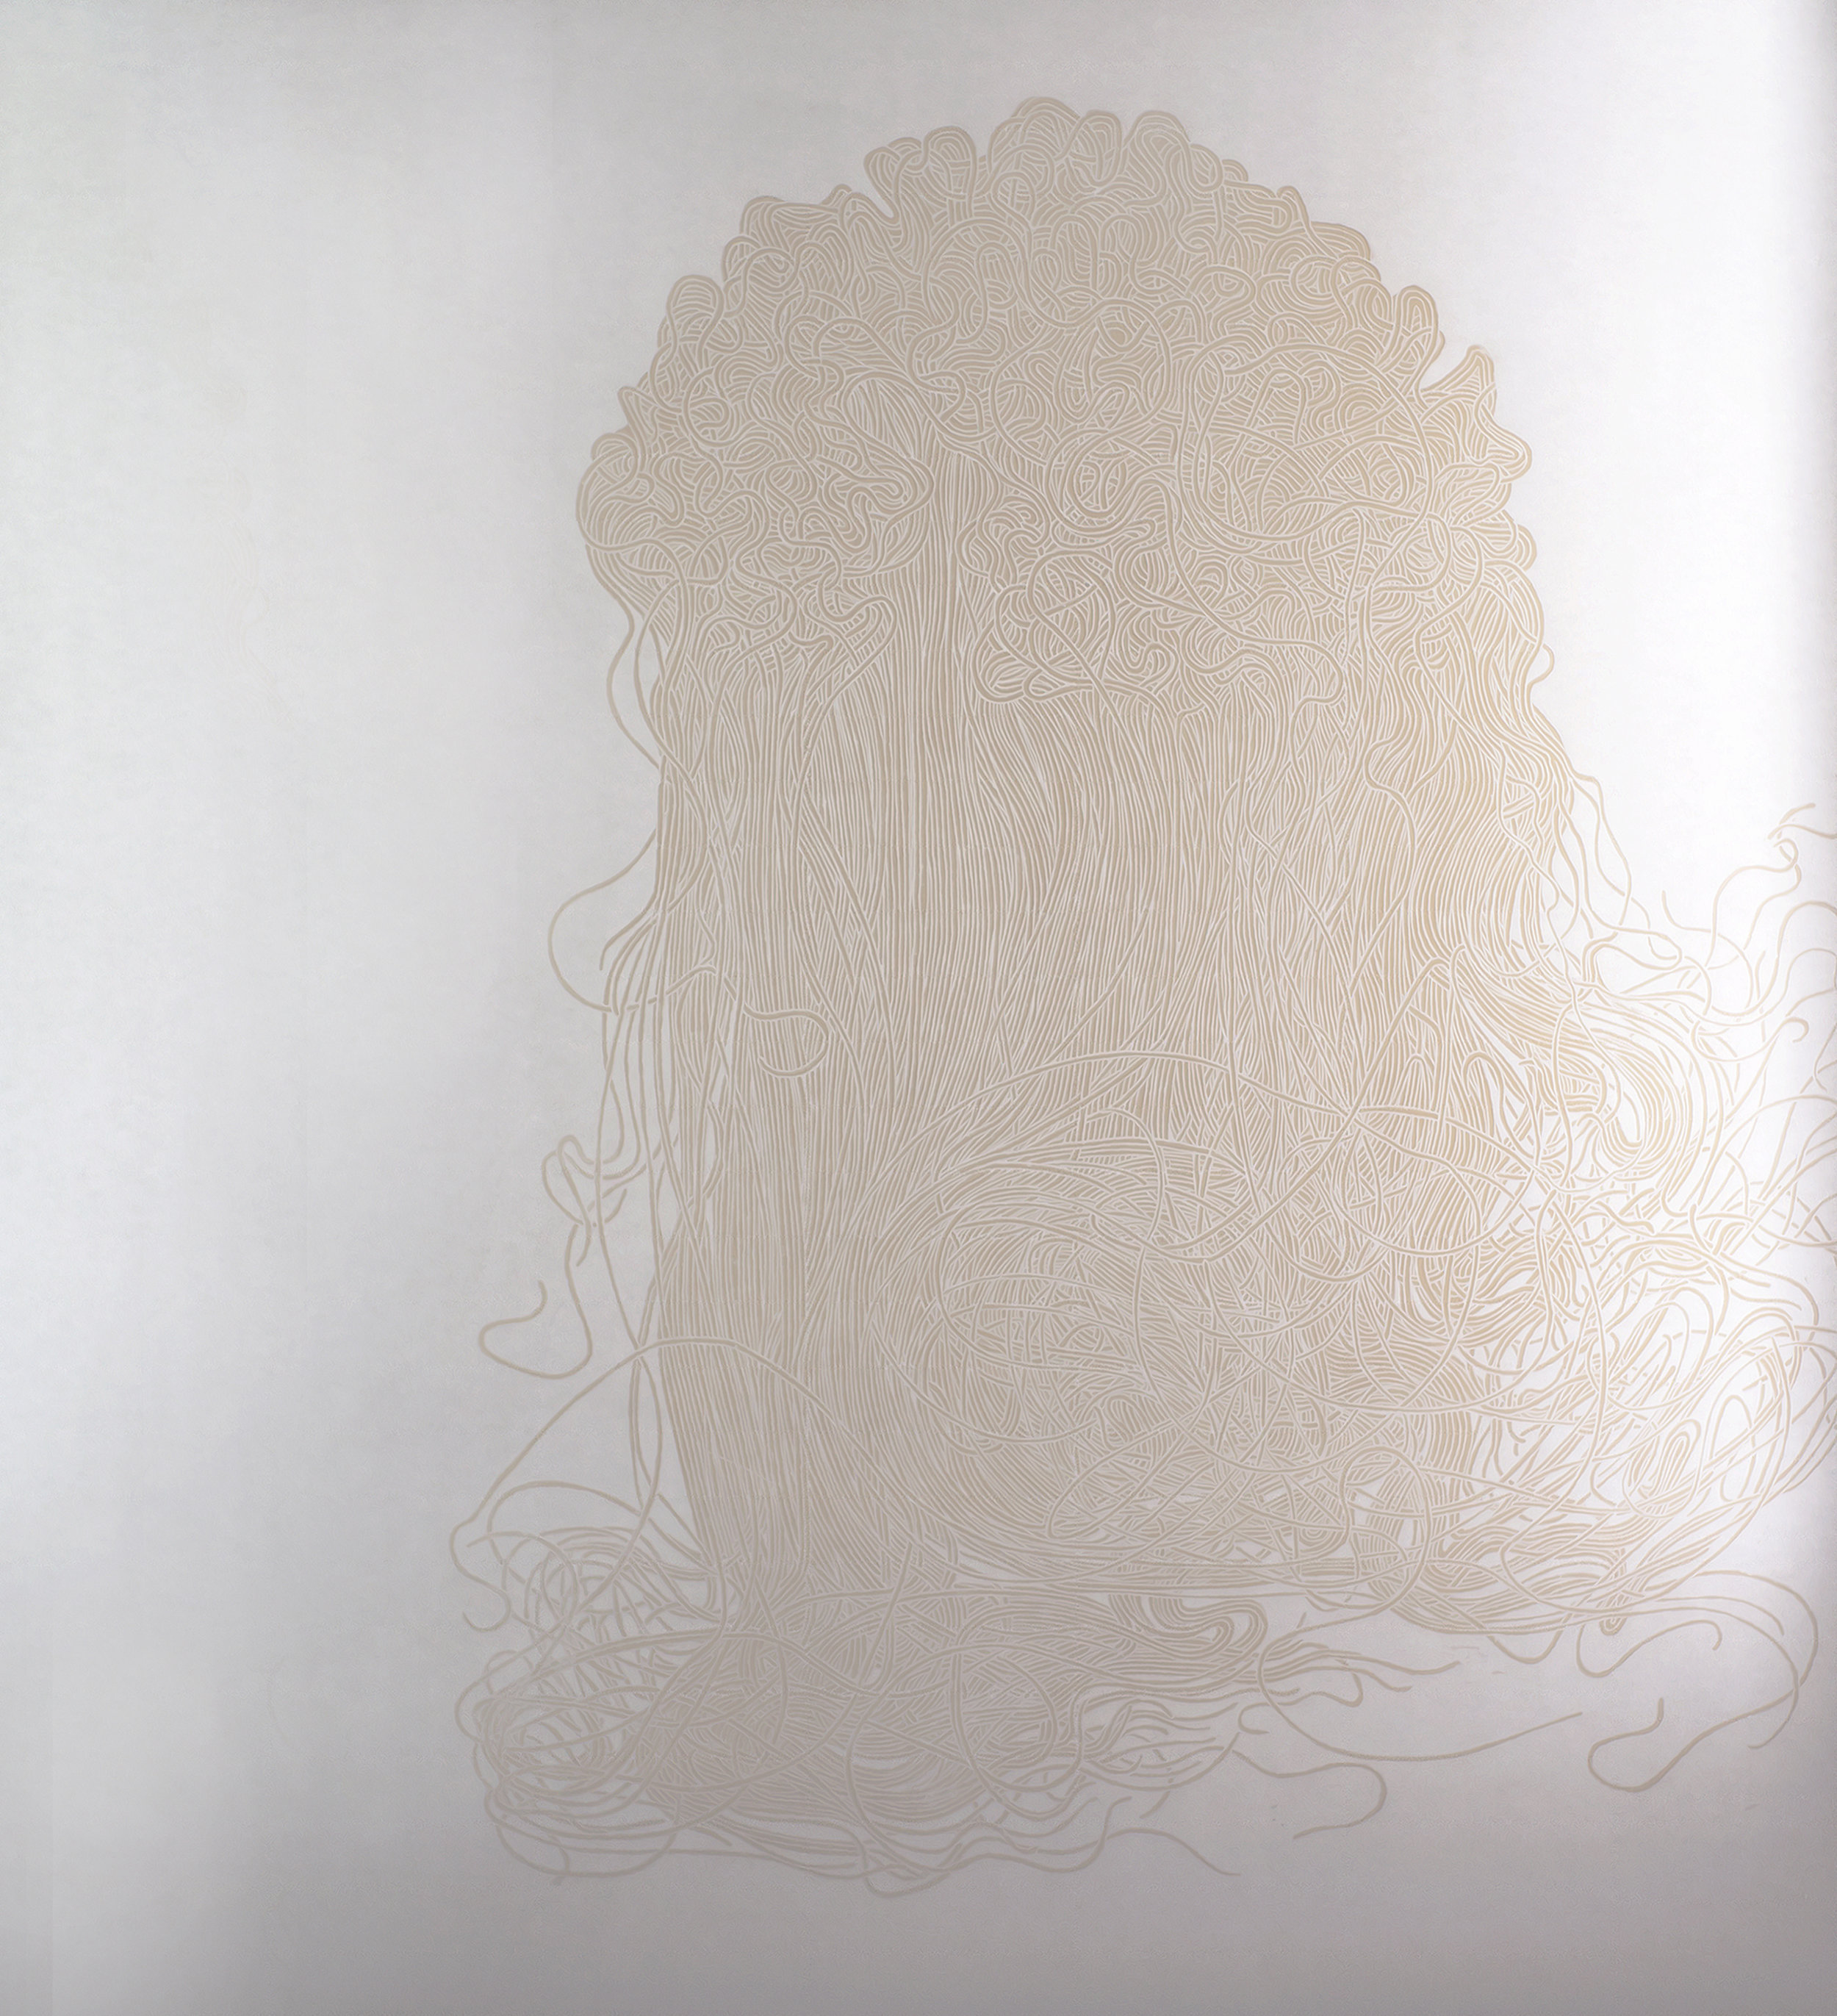 Abyss 001 , 2011,140cmx120cm.Woodcut printed white on white, edition of 3.